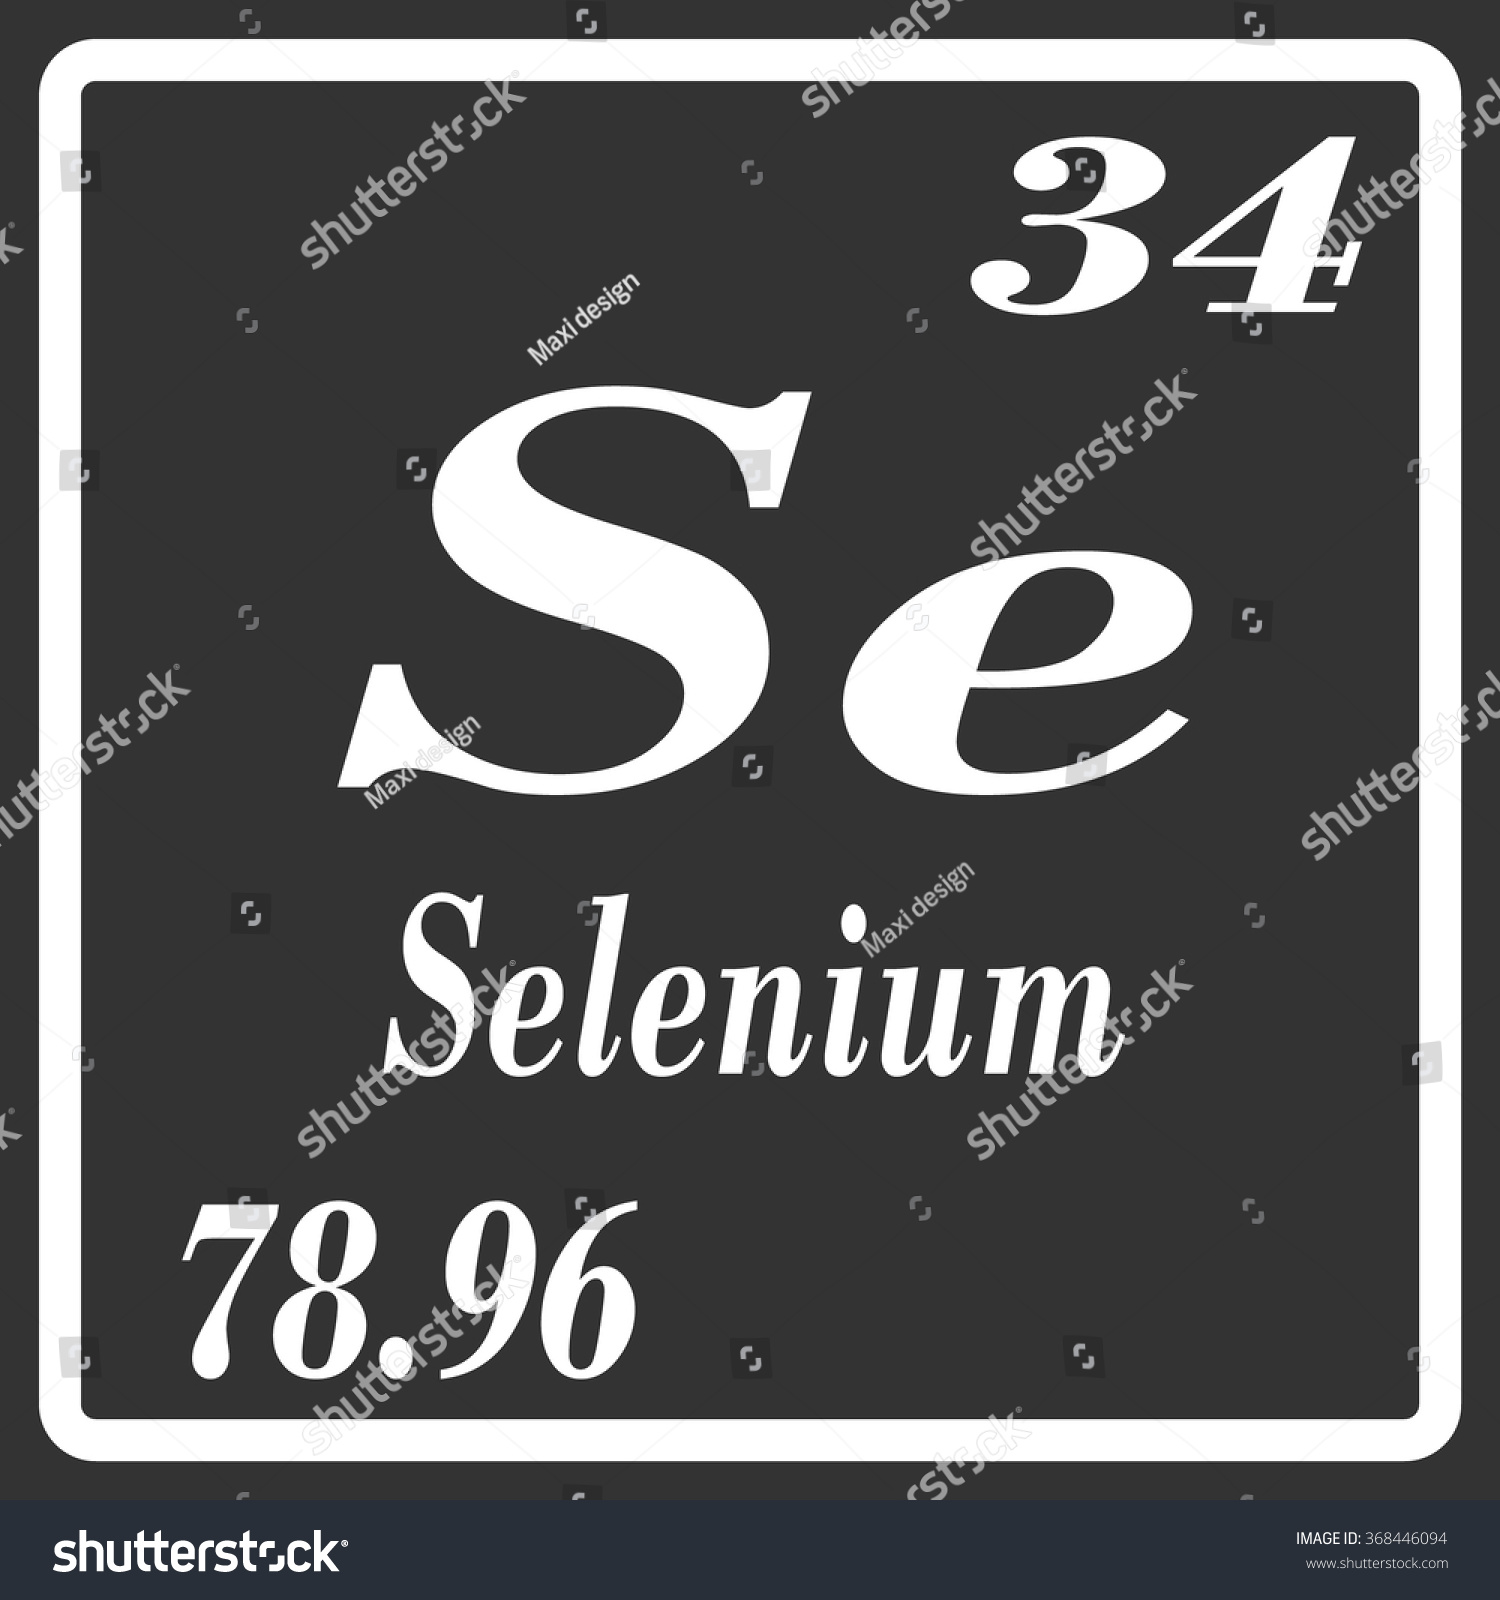 Periodic table elements selenium stock vector 368446094 shutterstock periodic table of elements selenium gamestrikefo Images